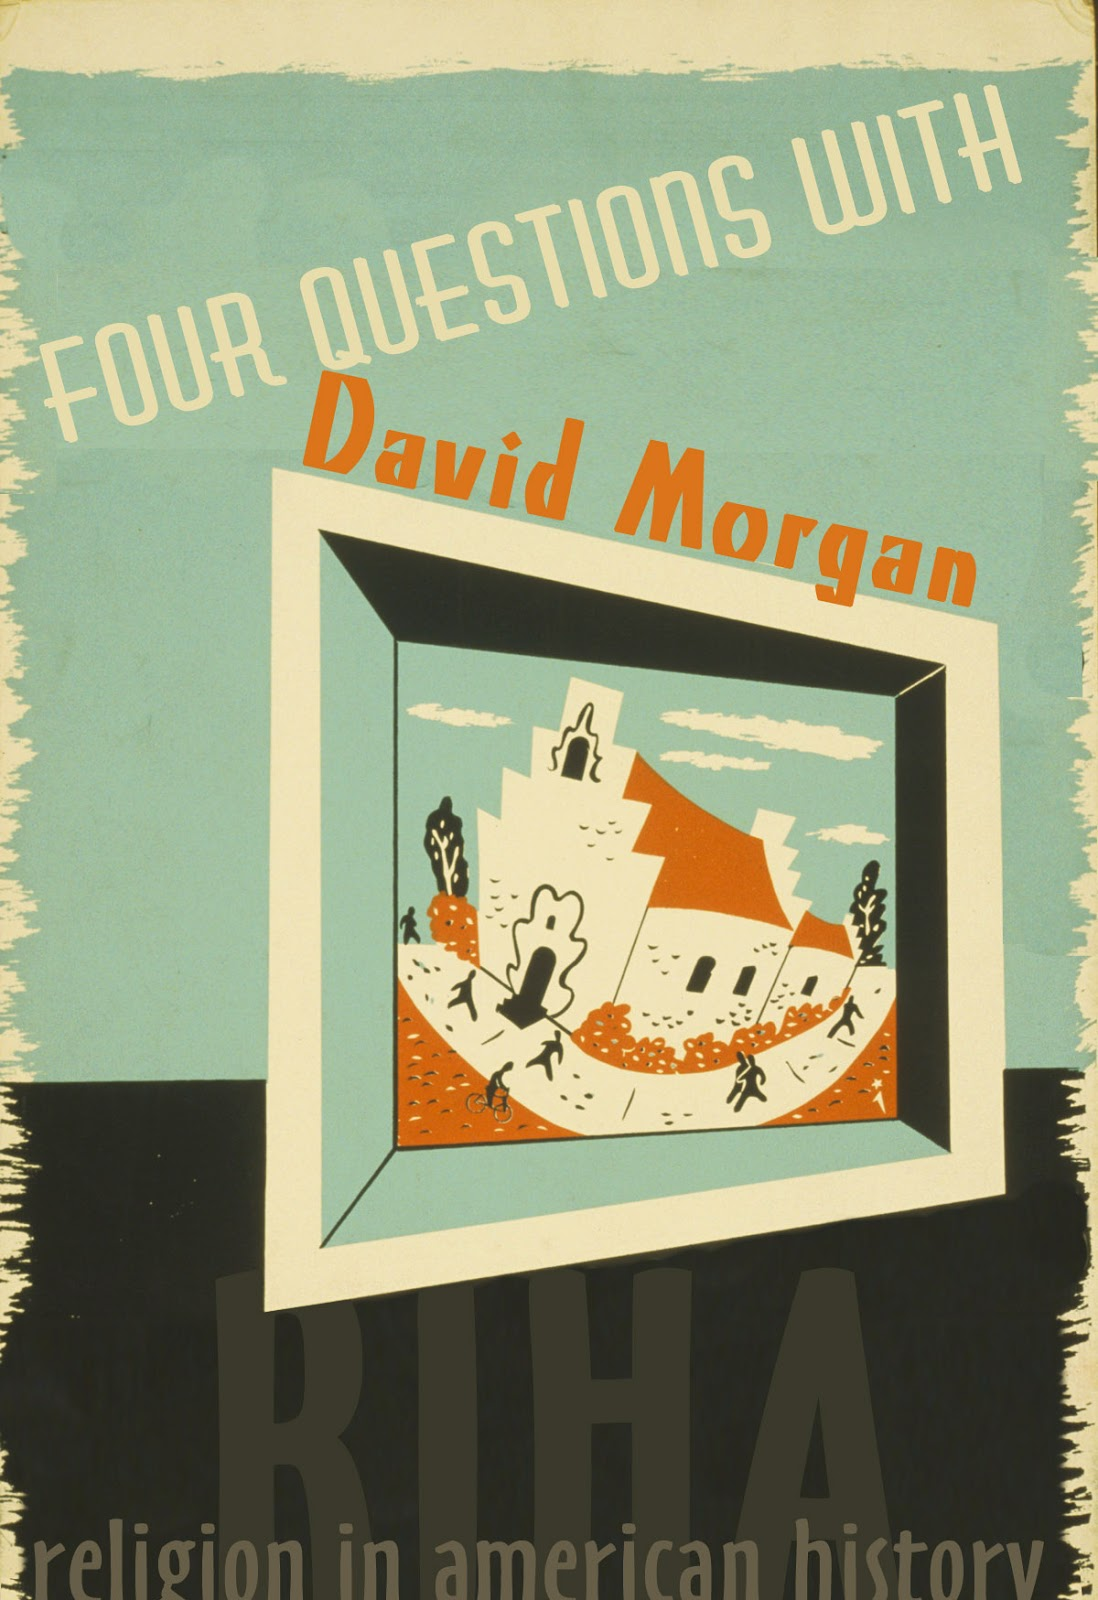 religion in american history four questions david morgan he has written a range of books and essays on the history of religious visual culture art history and critical theory and religion and media